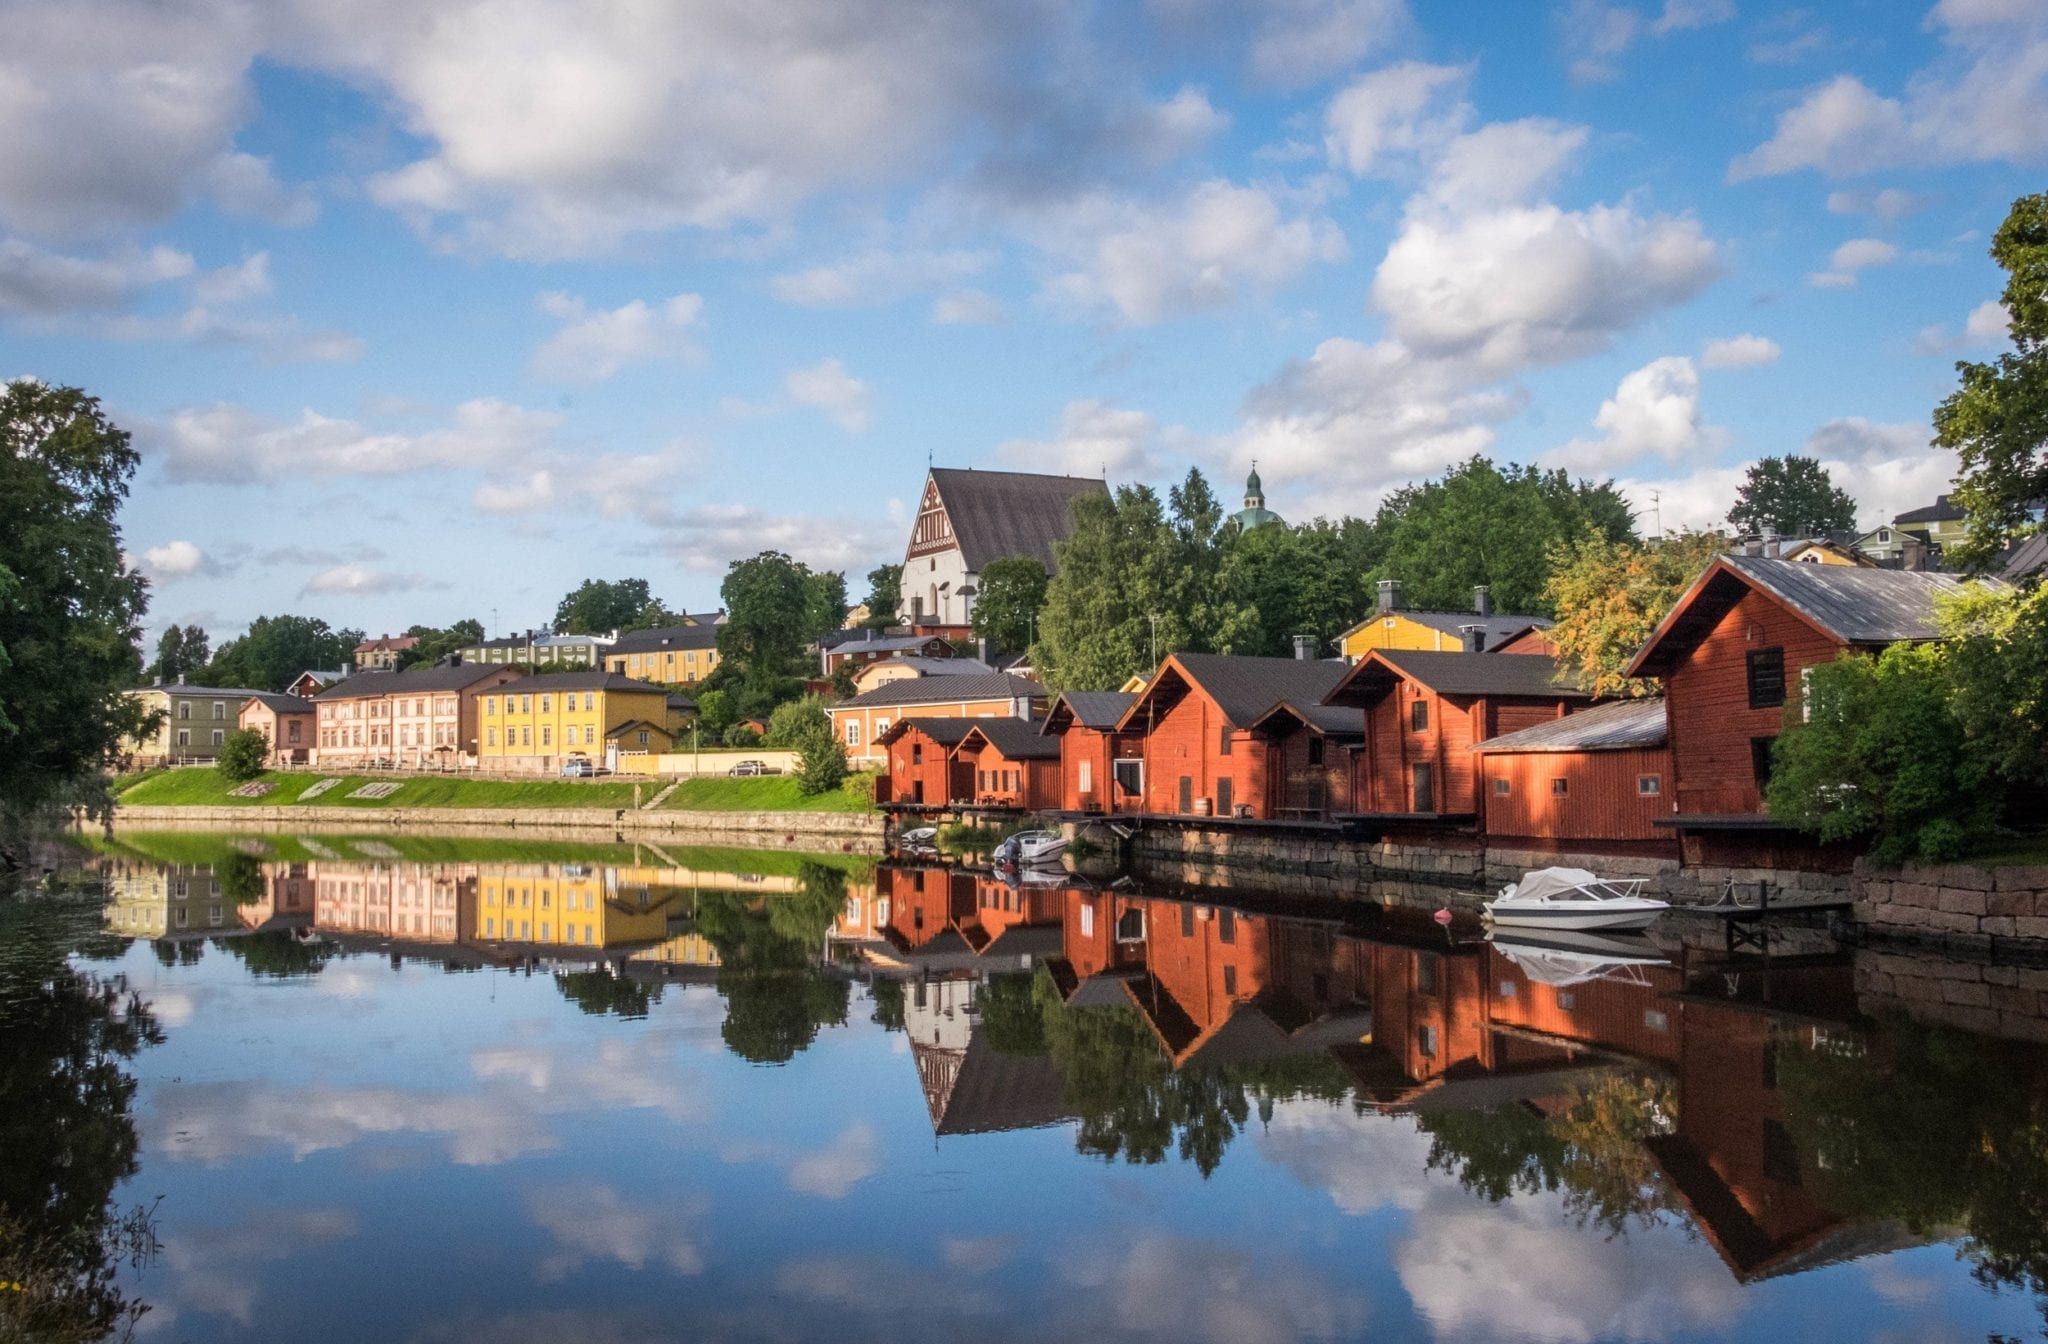 Finland In The Summer Quirky Isolated And Pretty Adventurous